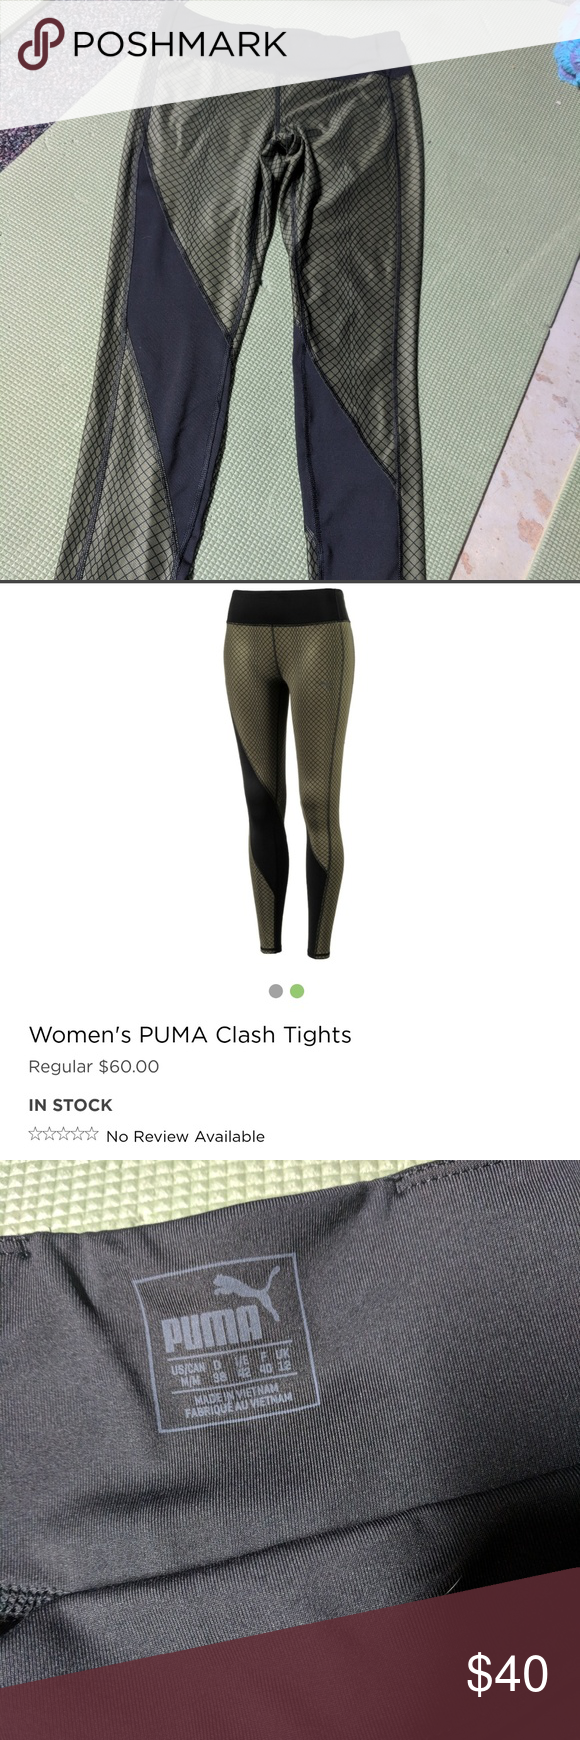 7ee9c469d2894 Puma dry cell workout leggings. Army green black Never worn new without  tags. Size Medium women's puma workout leggings. Army green with mid-rise  waist.